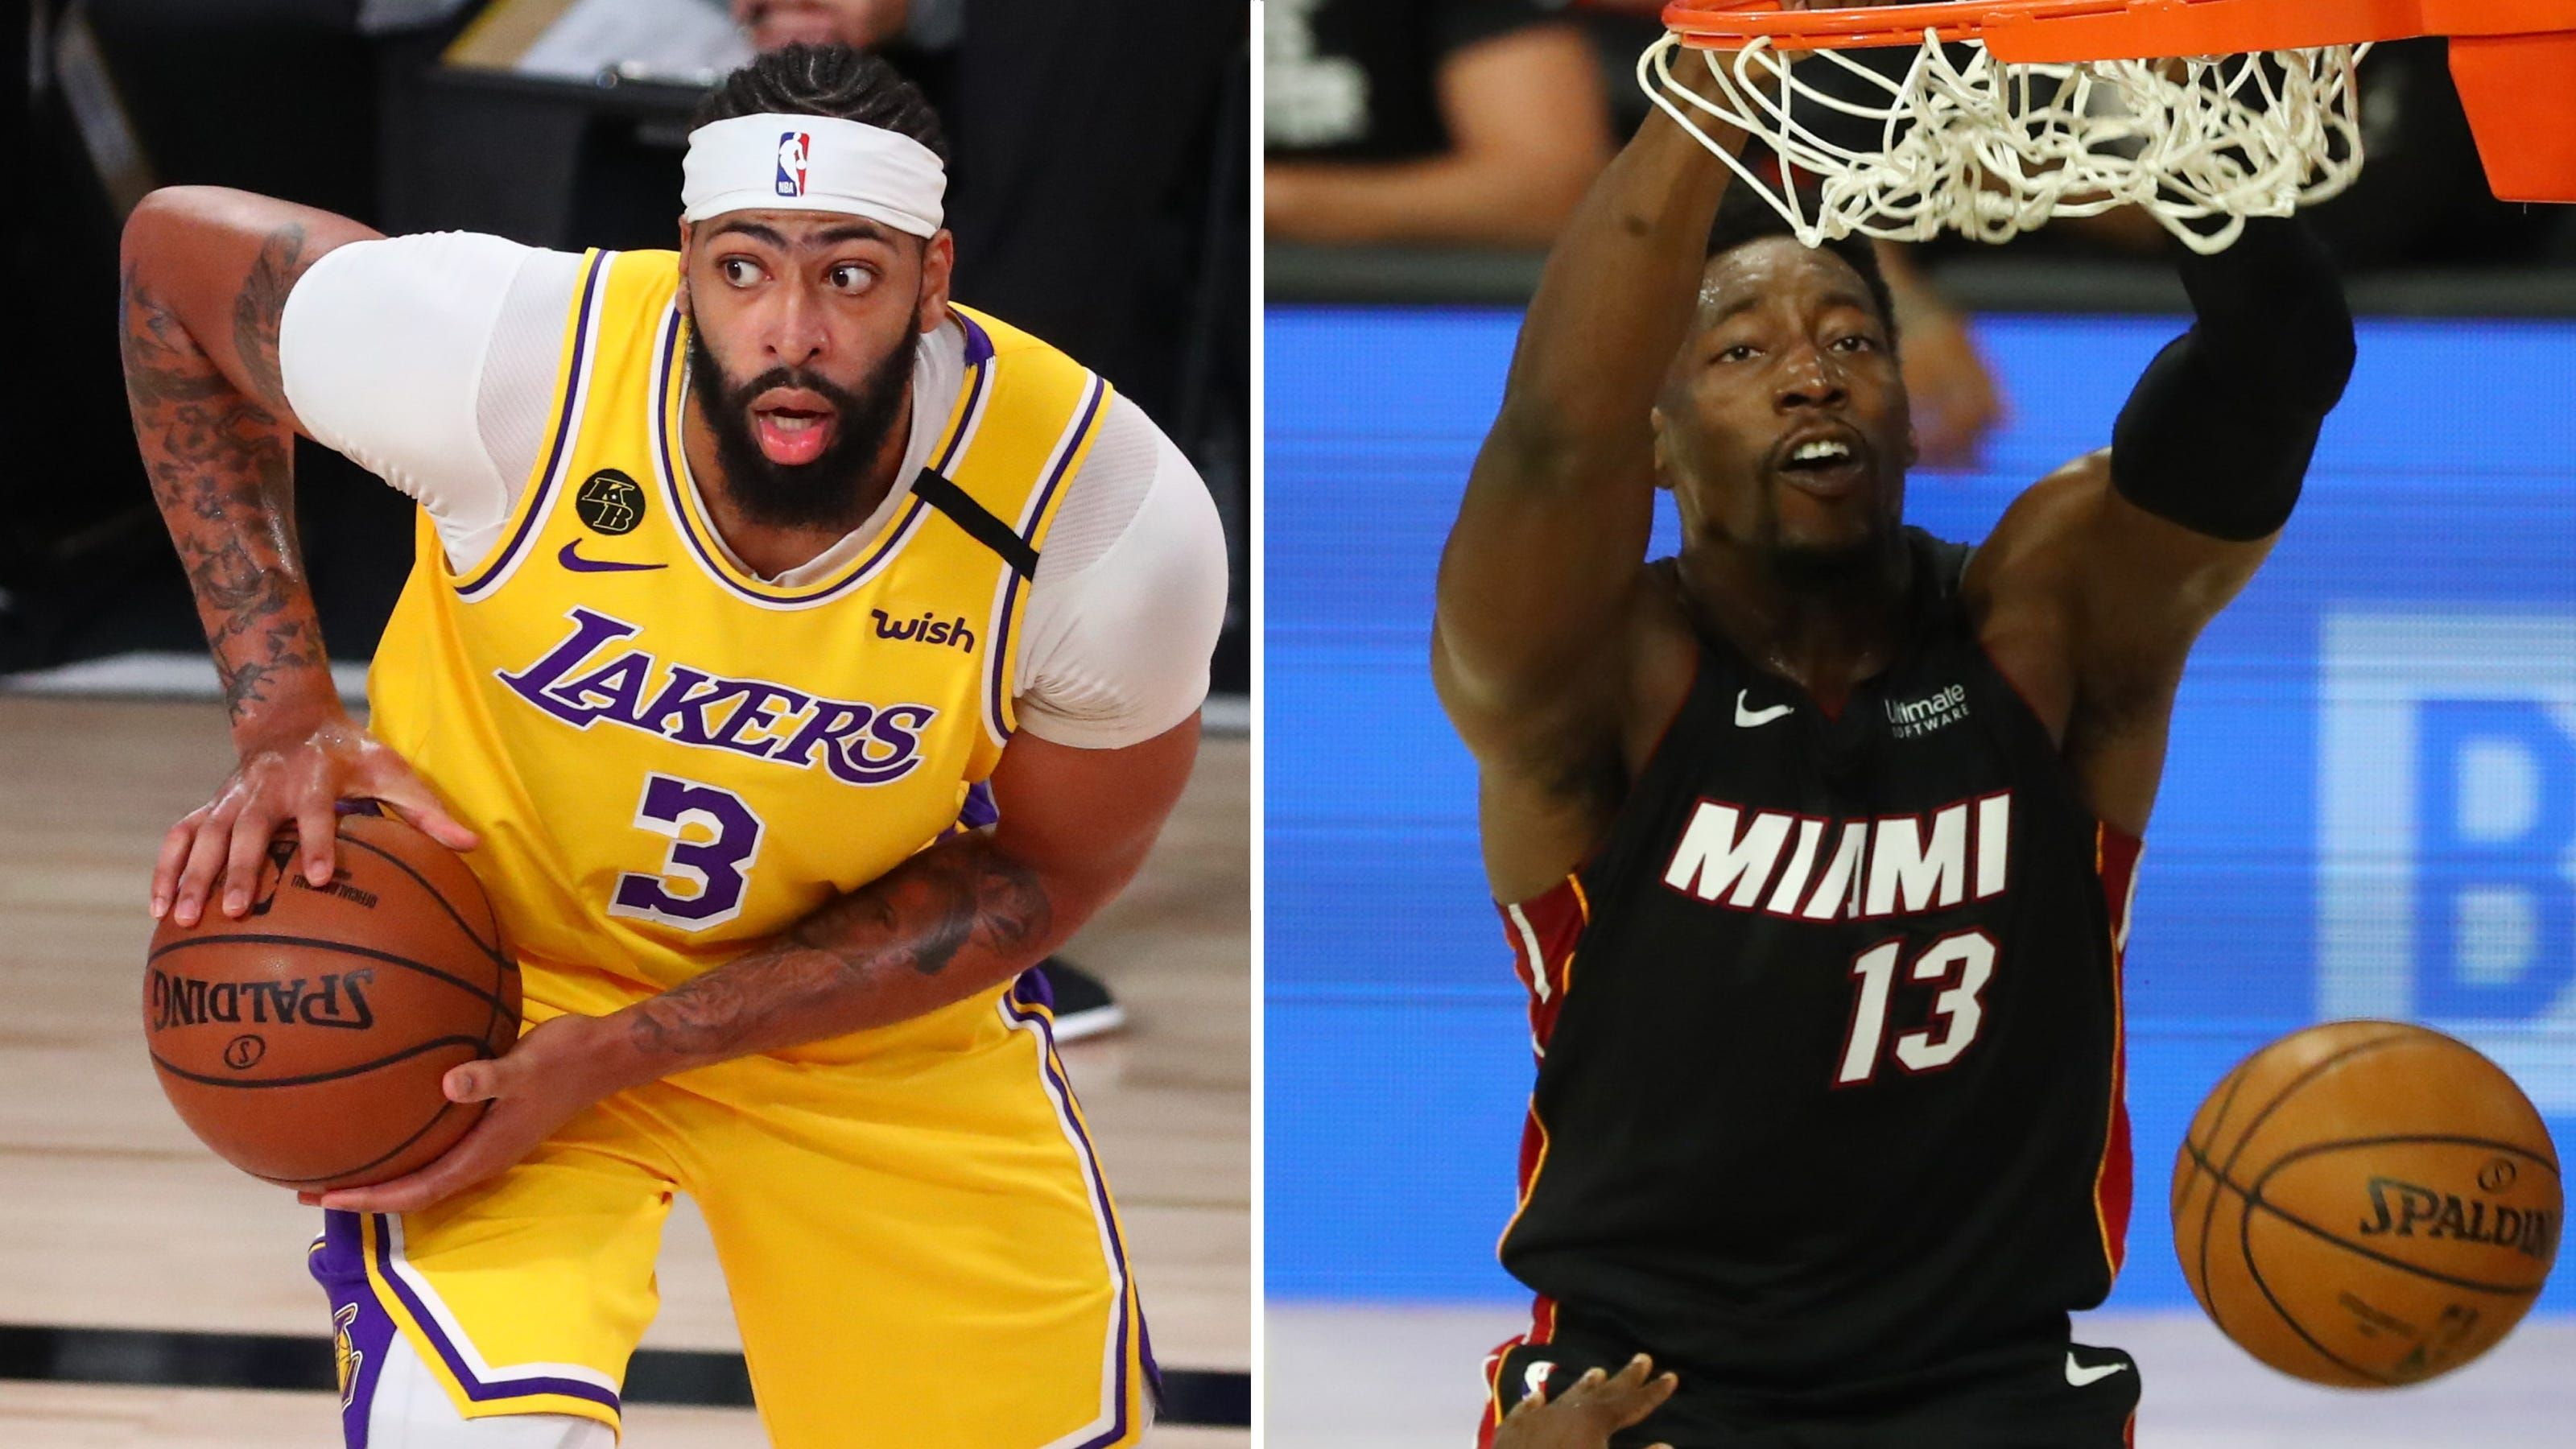 Sports Los Angeles Lakers Vs Miami Heat What To Watch For In Game 1 Of The Nba Finals It S Not The Situation Anyone En In 2020 Nba Finals Lakers Vs Nba Finals Game